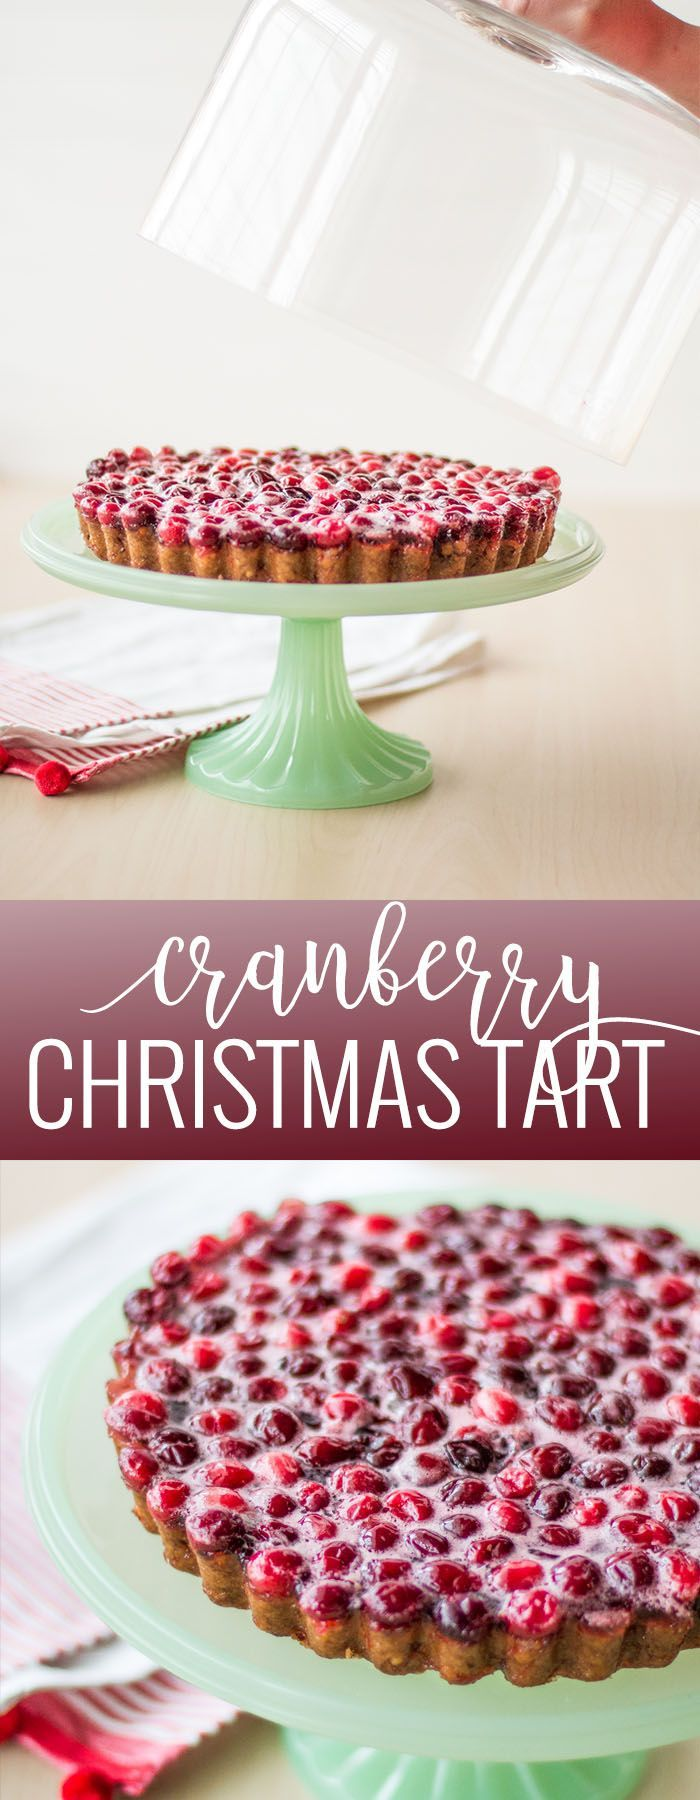 Christmas Cranberry Tart | nut crusted cranberry tart | holiday dessert recipes | holiday sweets and treats | homemade holiday desserts | christmas dessert recipes | homemade cranberry tart | cranberry dessert recipes || Oh So Delicioso #cranberrytart #holidaydesserts #christmasdesserts